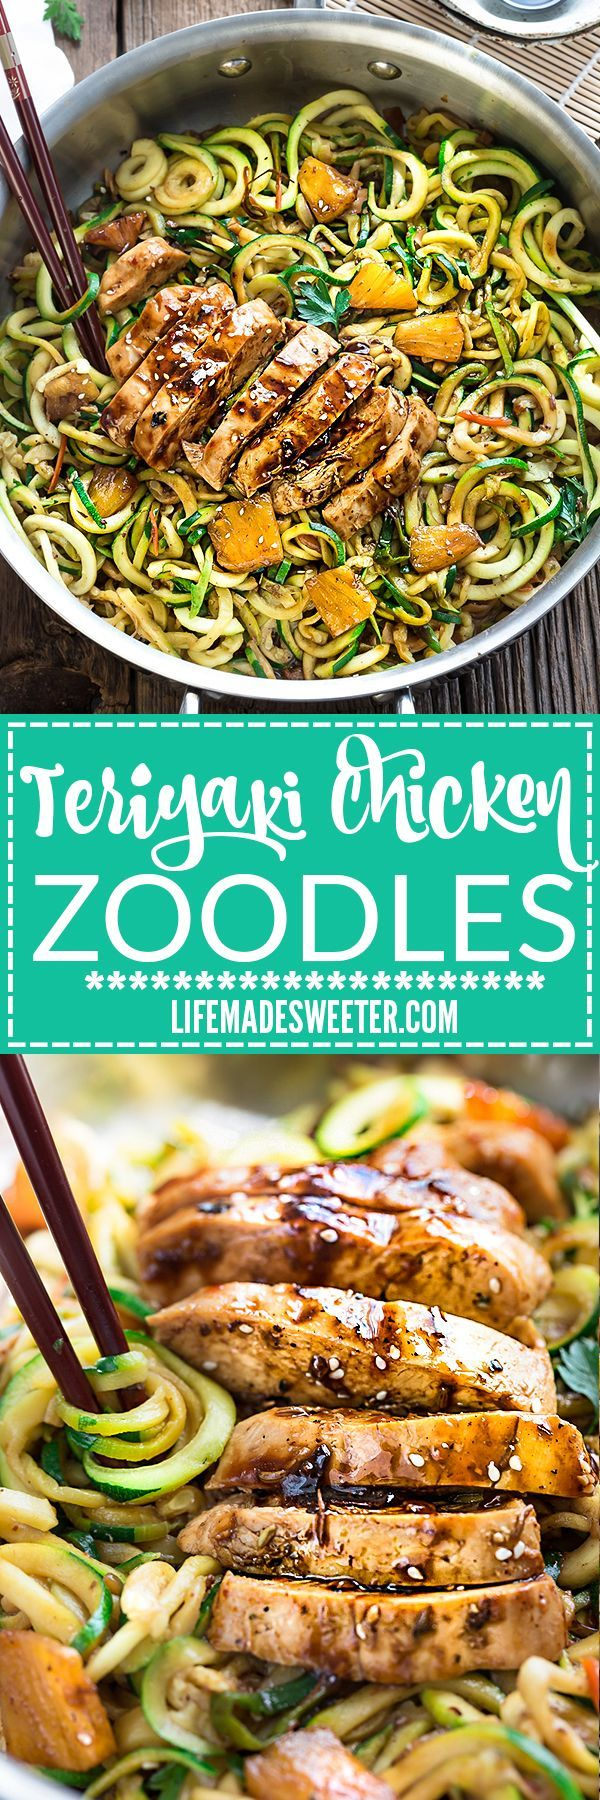 One Pot Teriyaki Chicken Zoodles {Zucchini Noodles} make the perfect easy low carb weeknight meal! Best of all so much better than takeout - only 30 minutes to make with just one pan to clean! Weekly meal prep for the week and leftovers are great for lunch bowls for work or school.